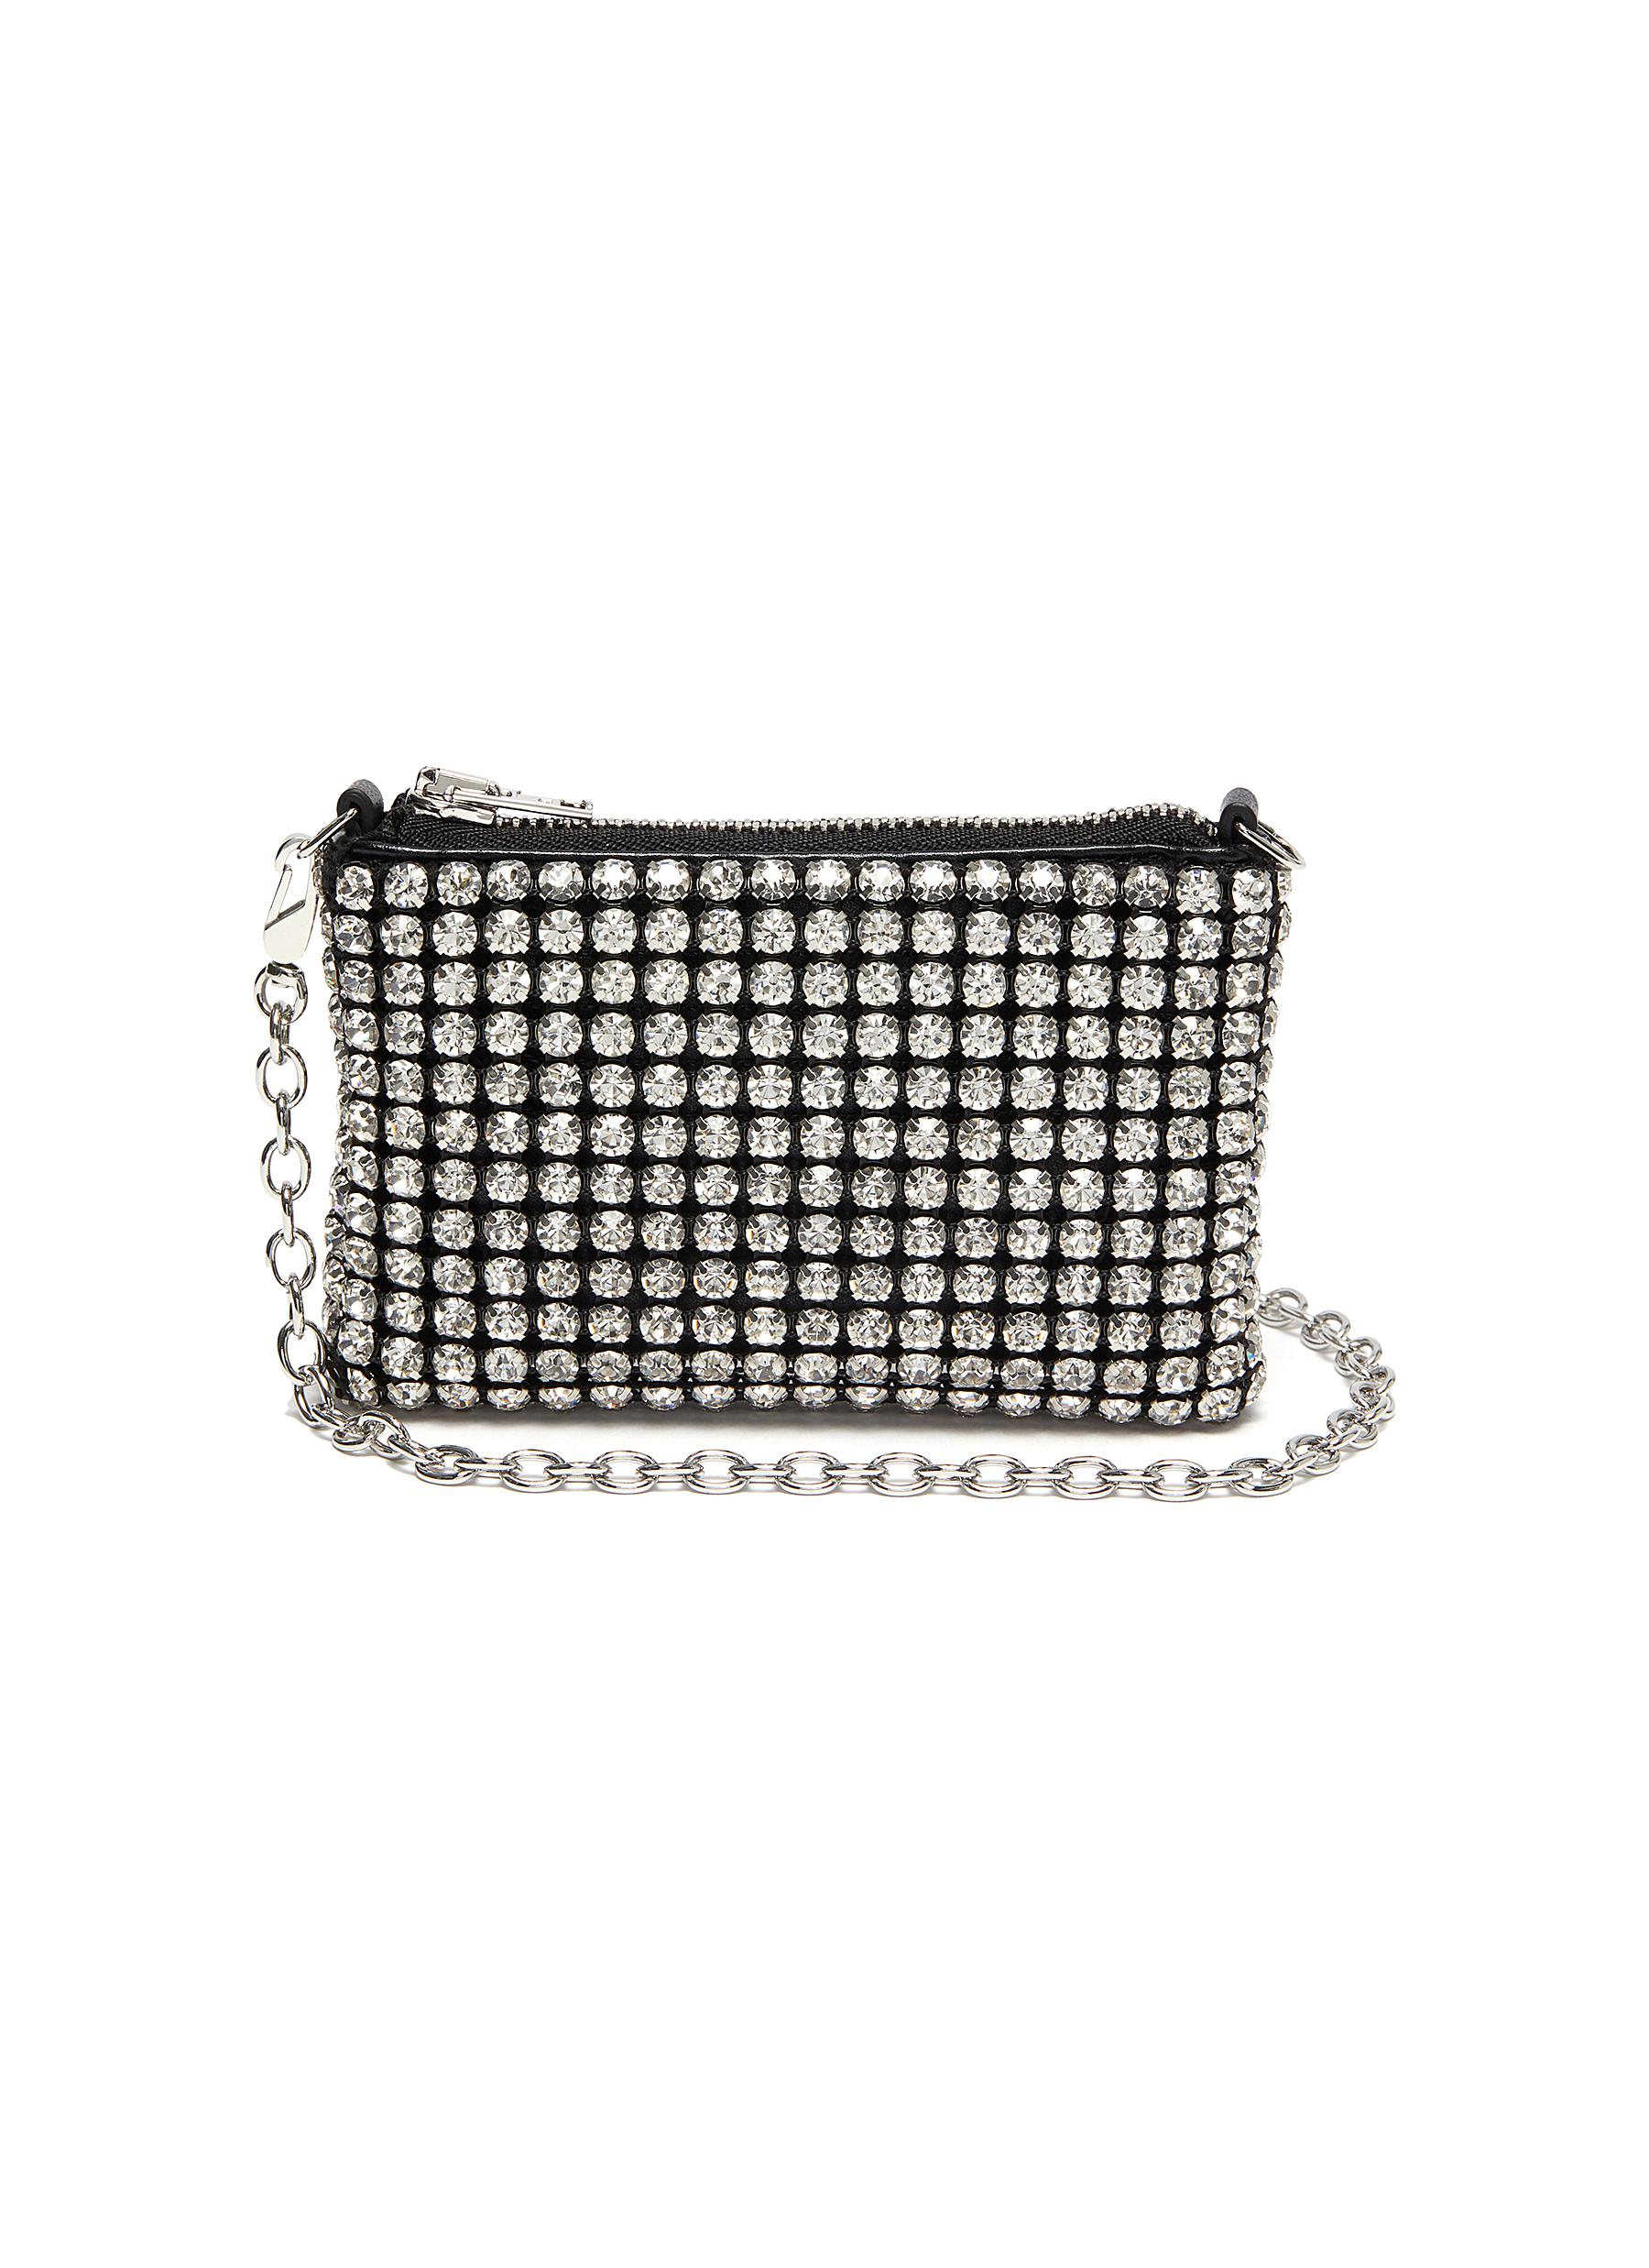 Alexander Wang 'WINGLOC' RHINESTONE TOP HANDLE POUCH